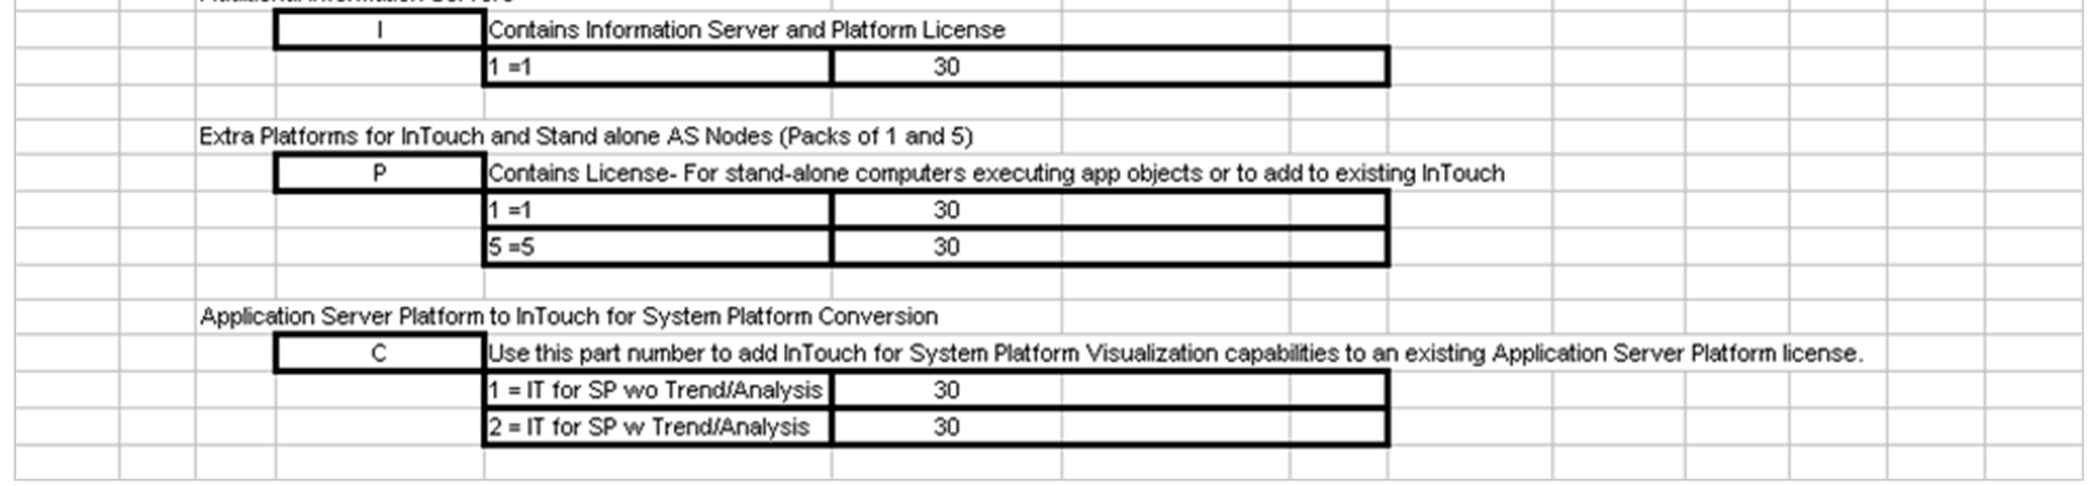 Licensing Guide for the Wonderware System Platform and Clients - PDF